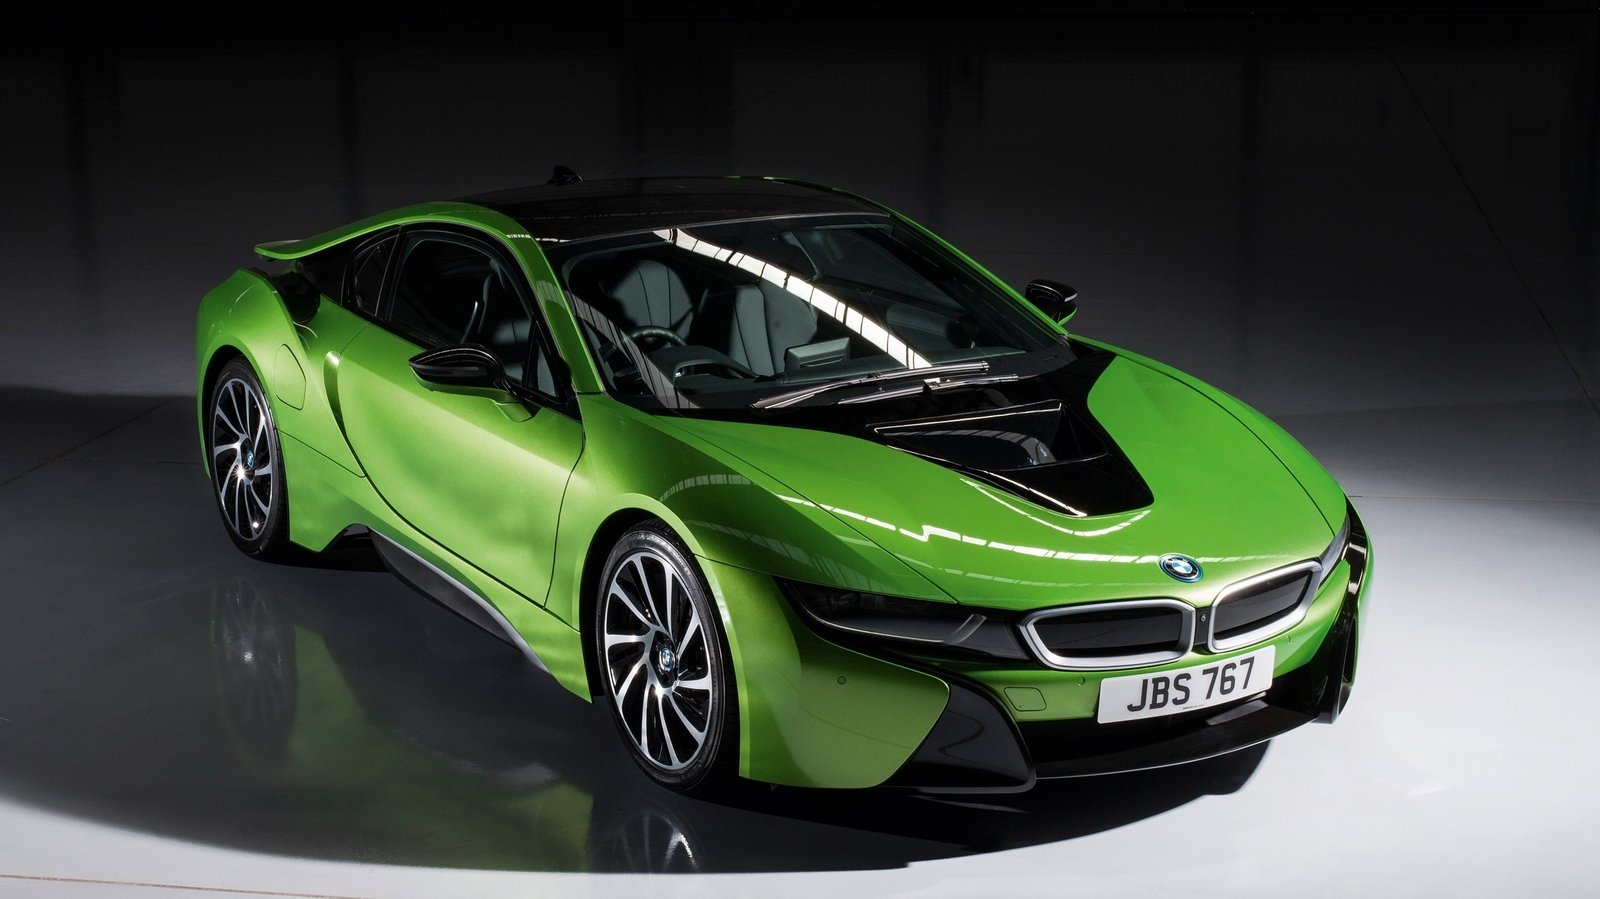 Bmw Considering All Electric Replacement For The I8 Hybrid